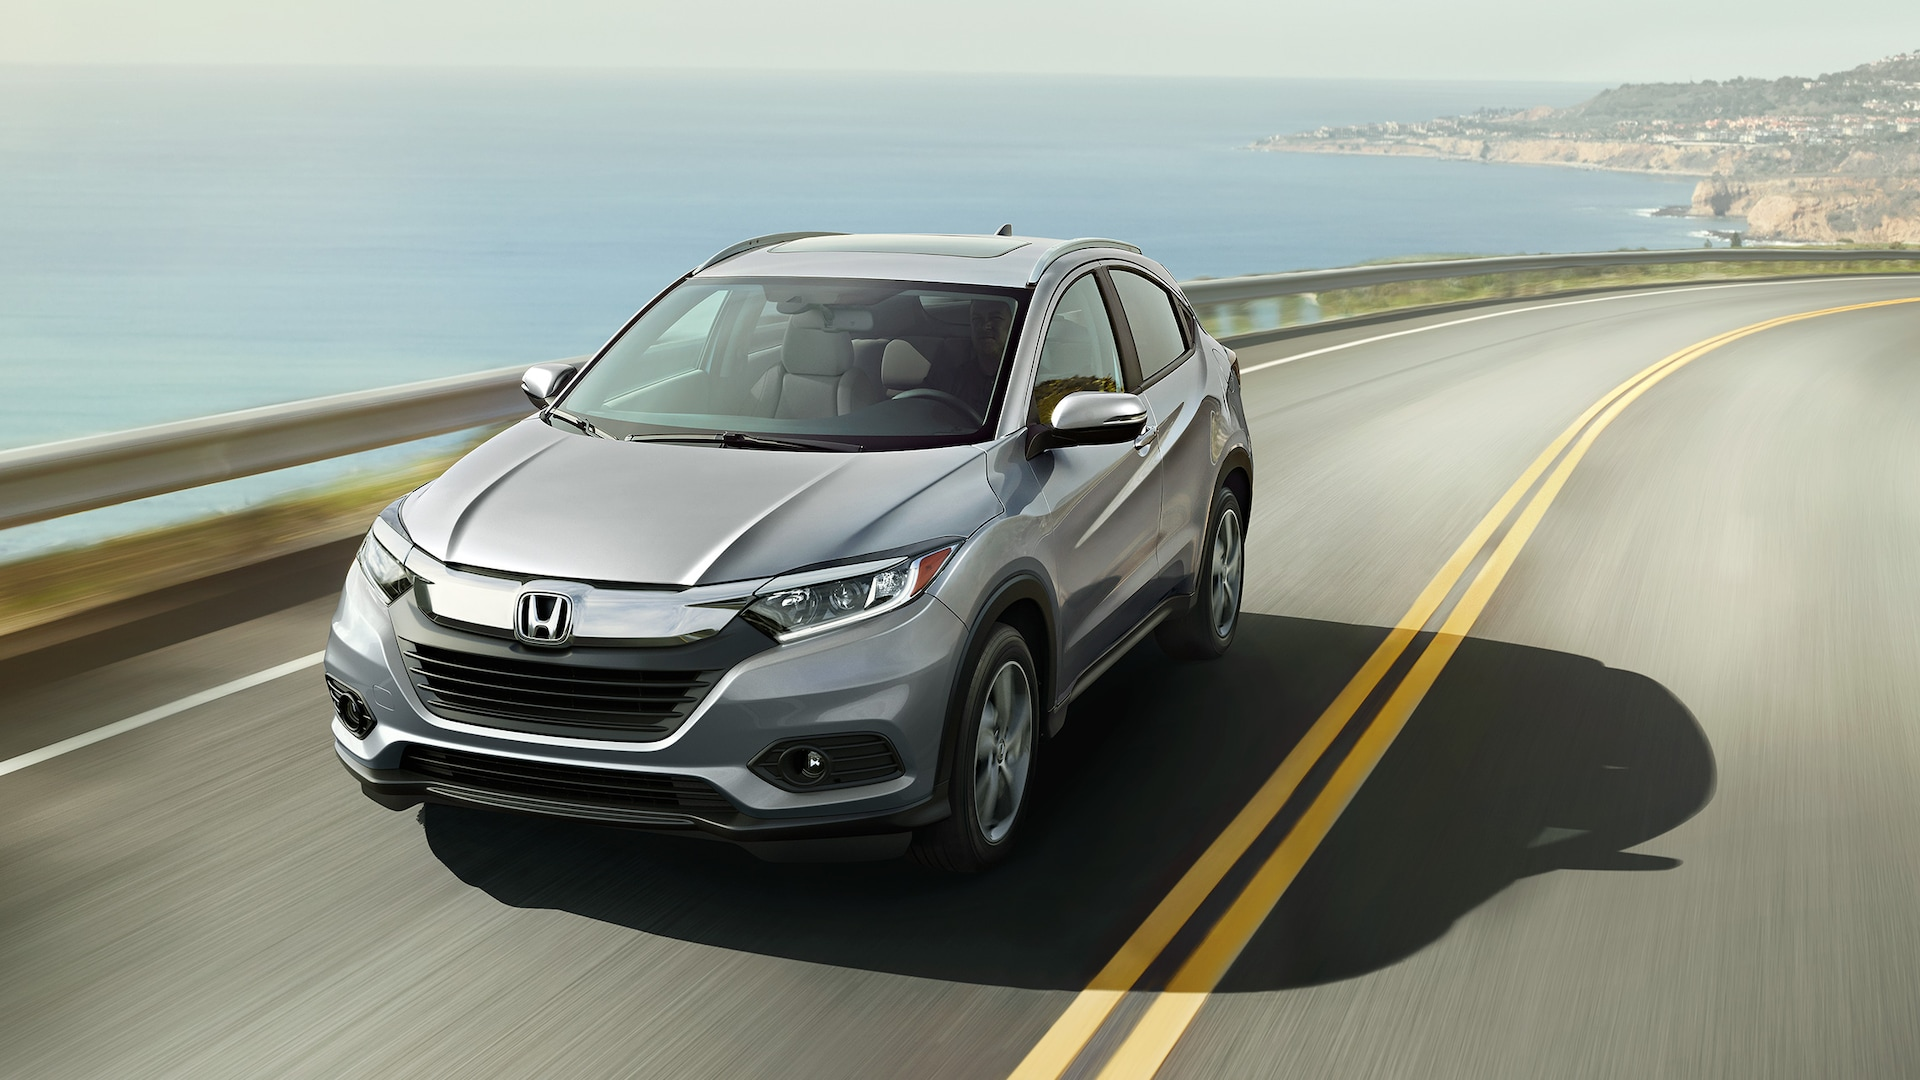 Front driver-side view of the 2021 Honda HR-V EX-L in Lunar Silver Metallic driving on a highway overlooking an ocean.